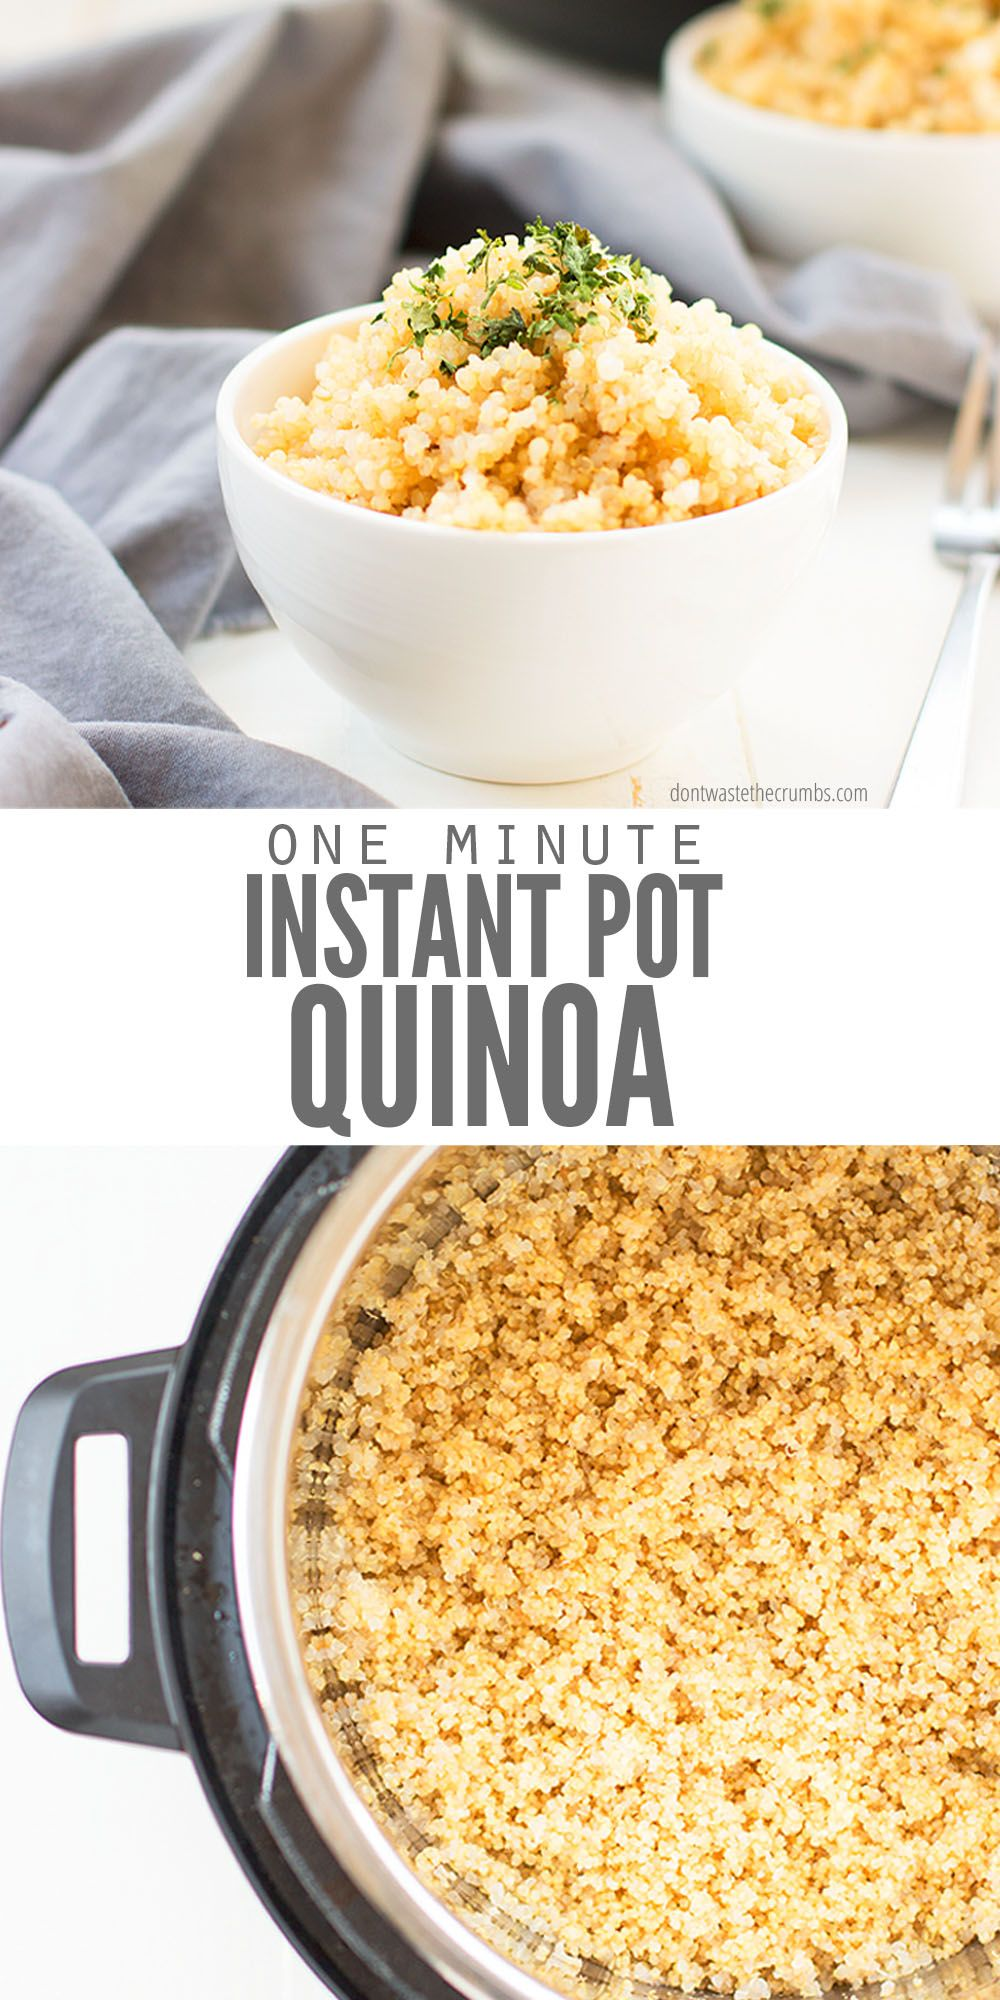 Photo of How to Cook Quinoa Perfectly in the Instant Pot